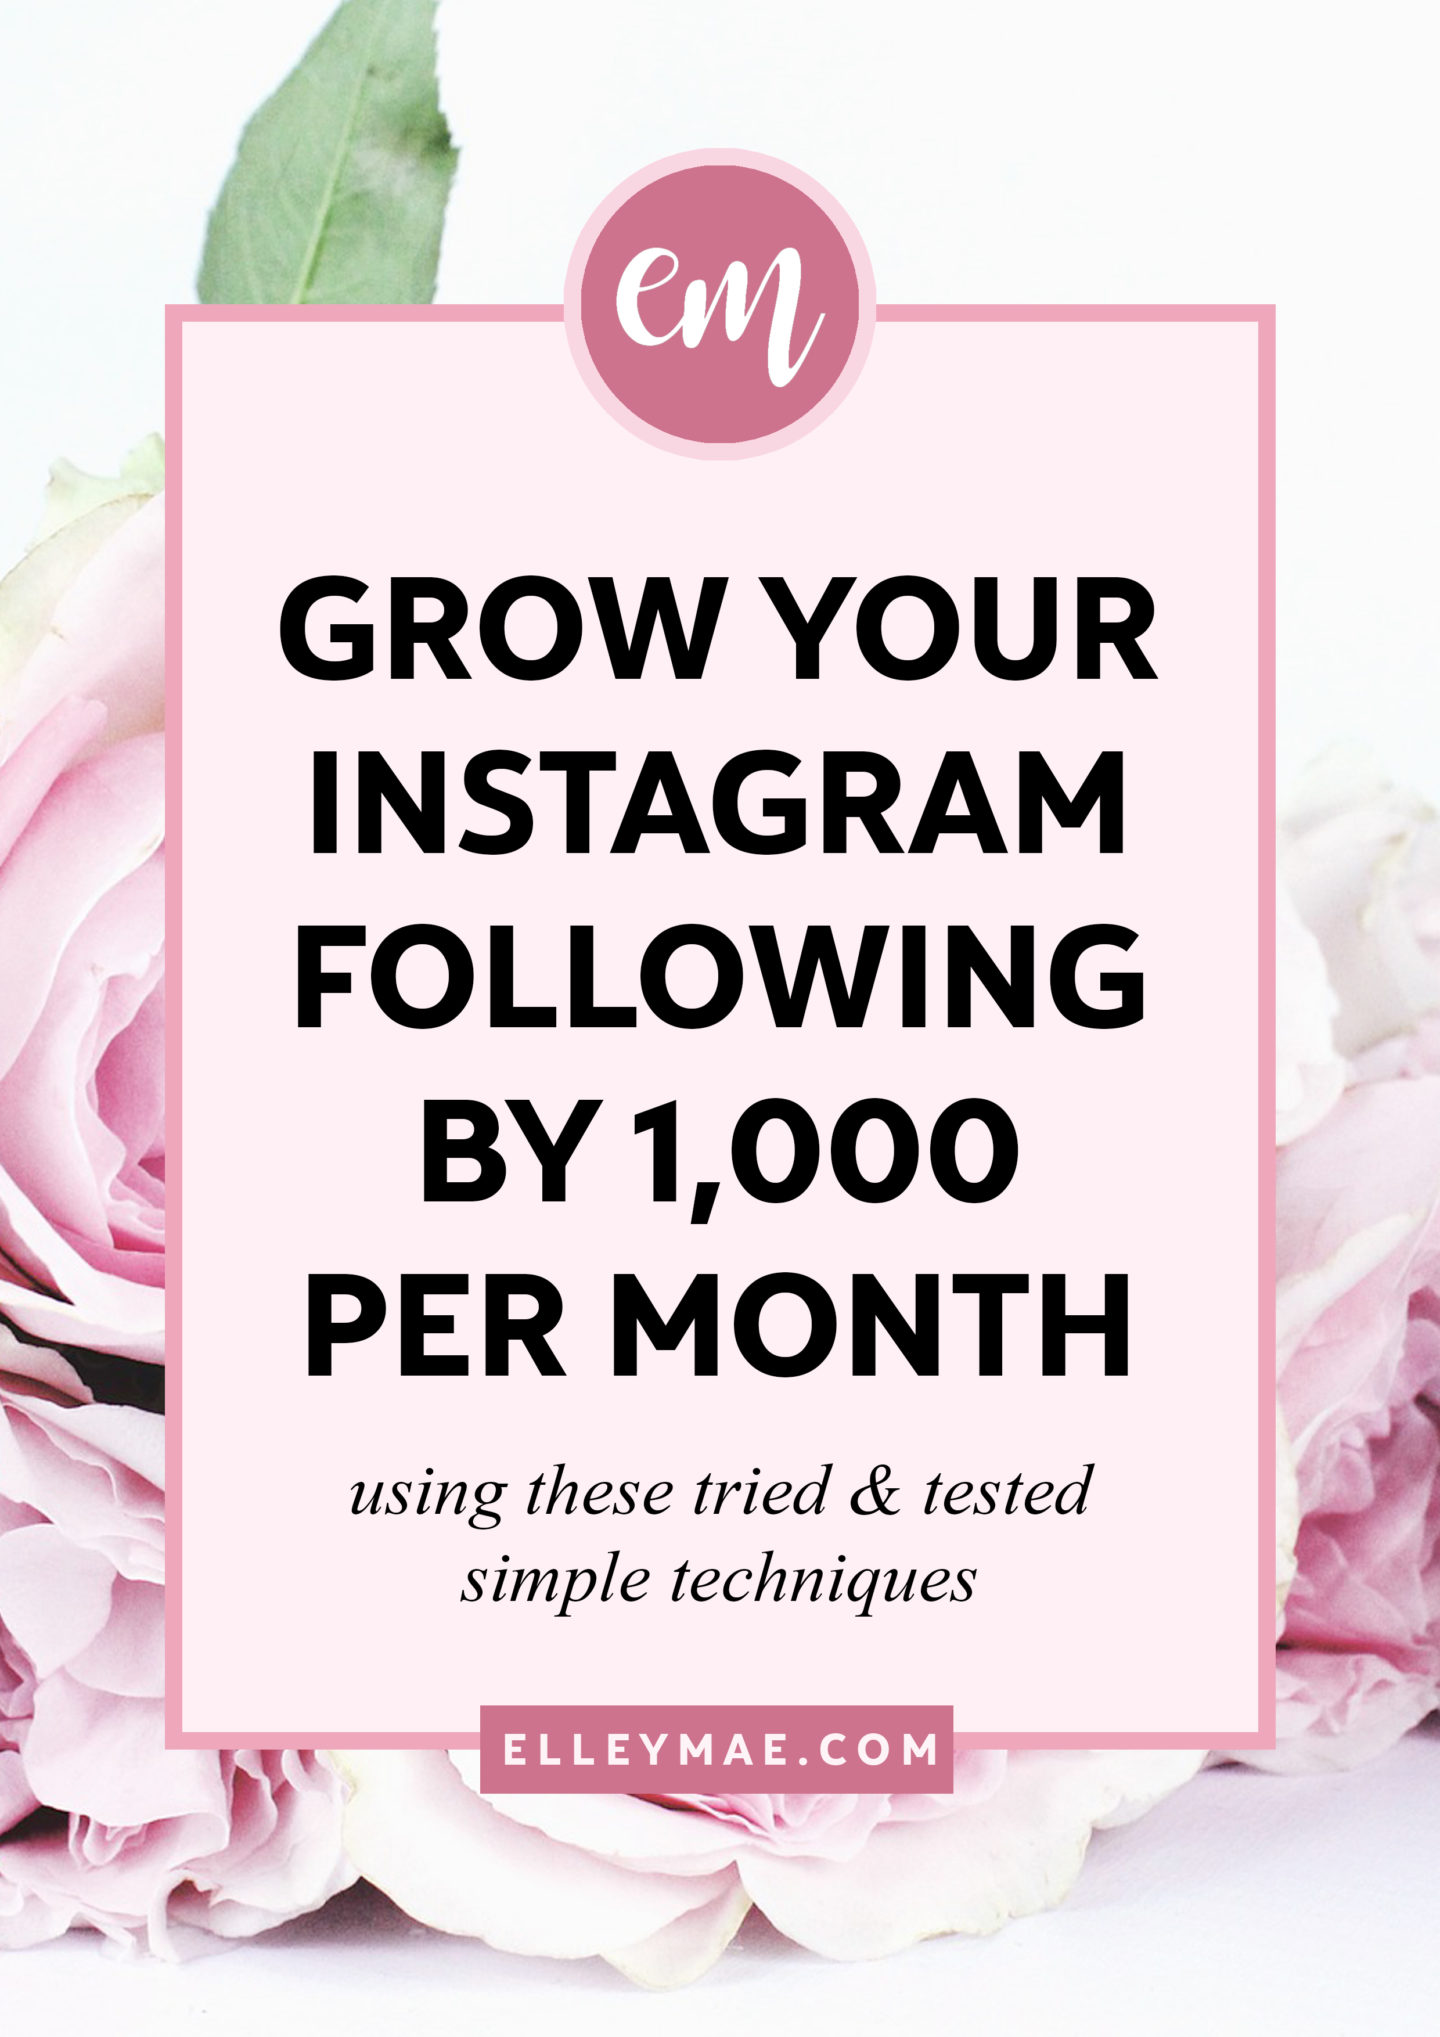 Gain Followers On Instagram | Sick of trying to crack the Instagram algorithm? Fed up with seeing your followers decline not go up?! Yep, I've been there. Instagram can be frustrating sometimes - But I managed to gain followers on Instagram, 10 thousand within 10 months actually. Wanna know my Instagram secrets? Learn more at ElleyMae.com